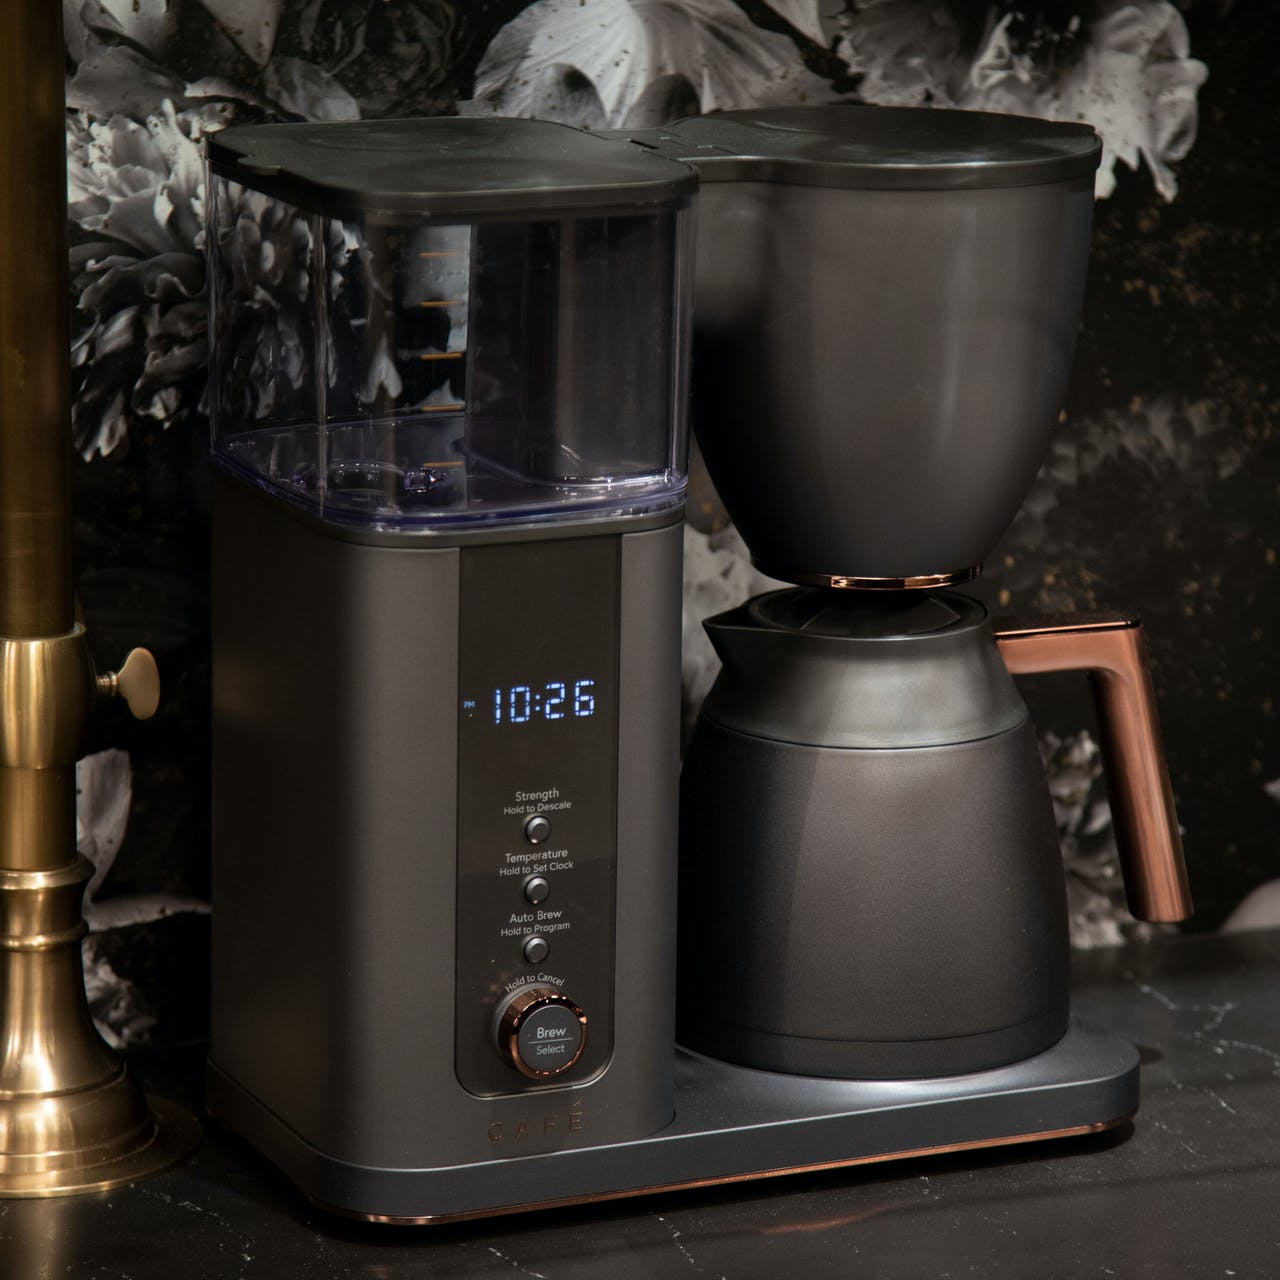 Cafe Specialty Drip Coffee Maker in Matte Black